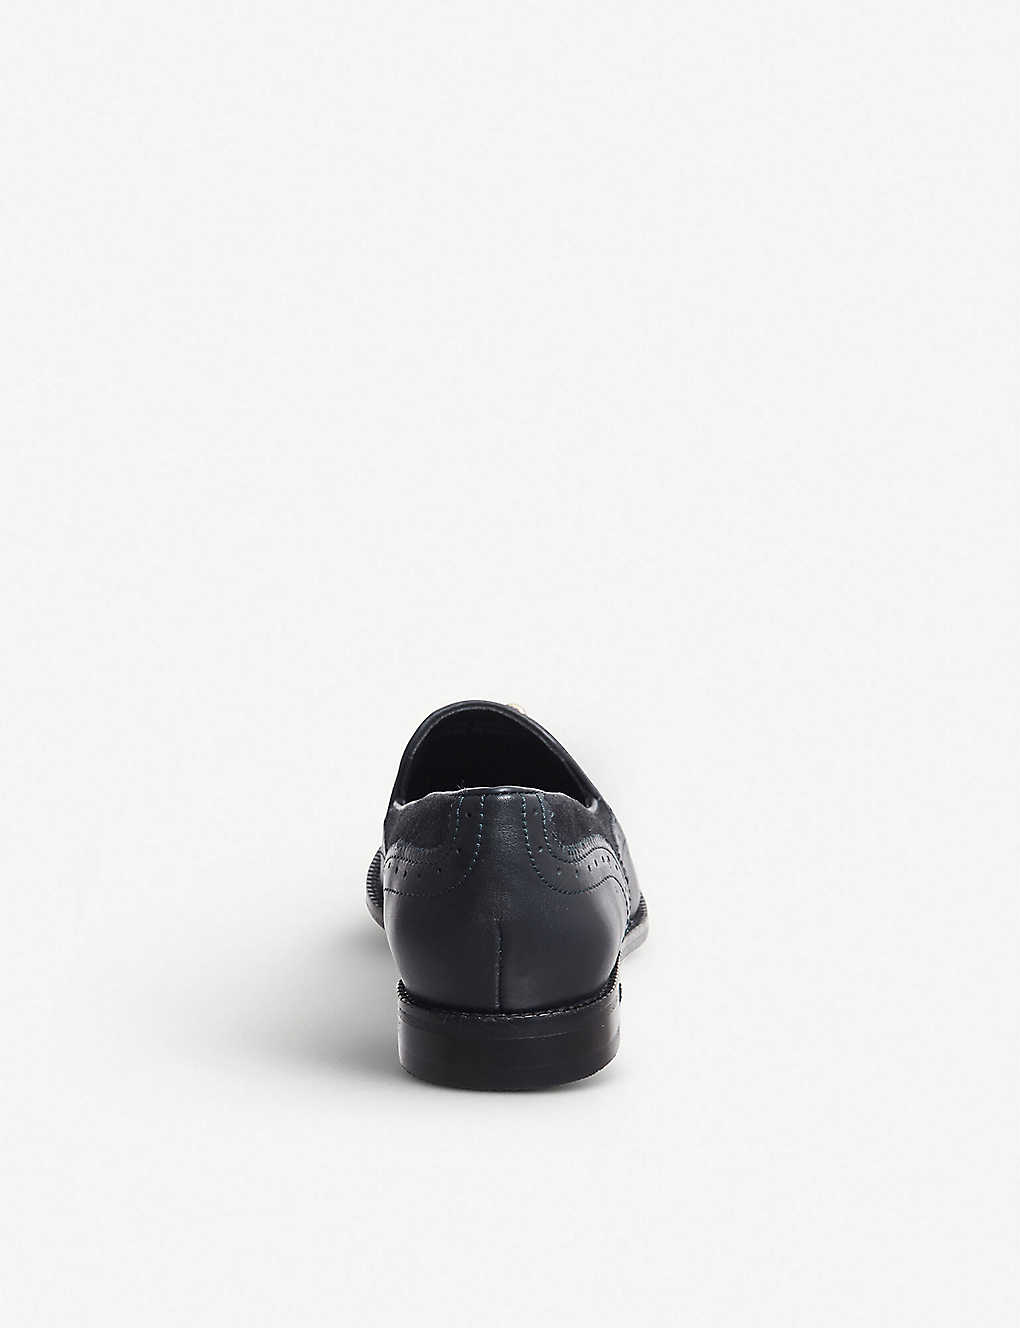 e782ee21eea ... Familiar tassel-detail patent leather loafers - Navy leather suede